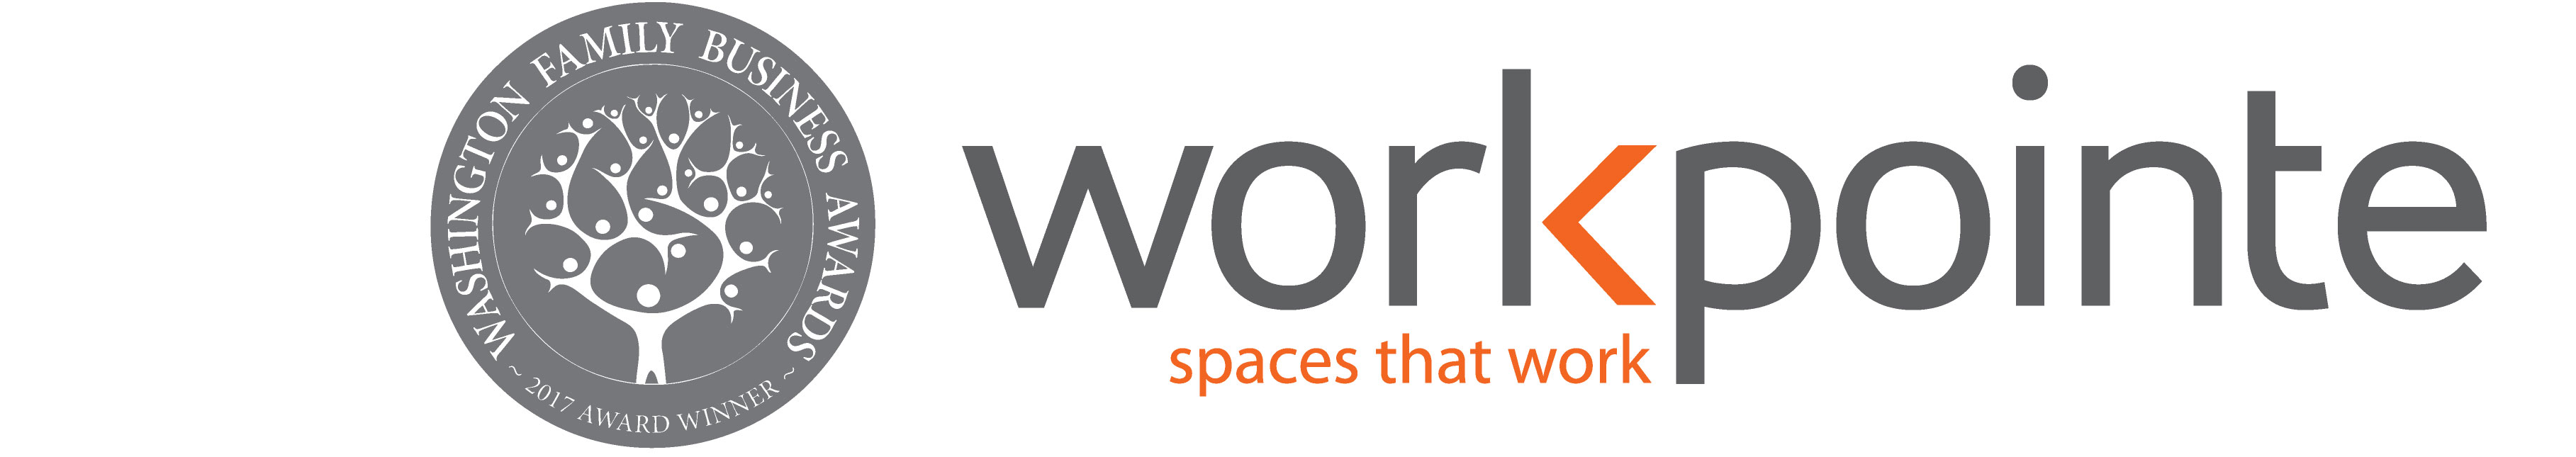 Workpointe